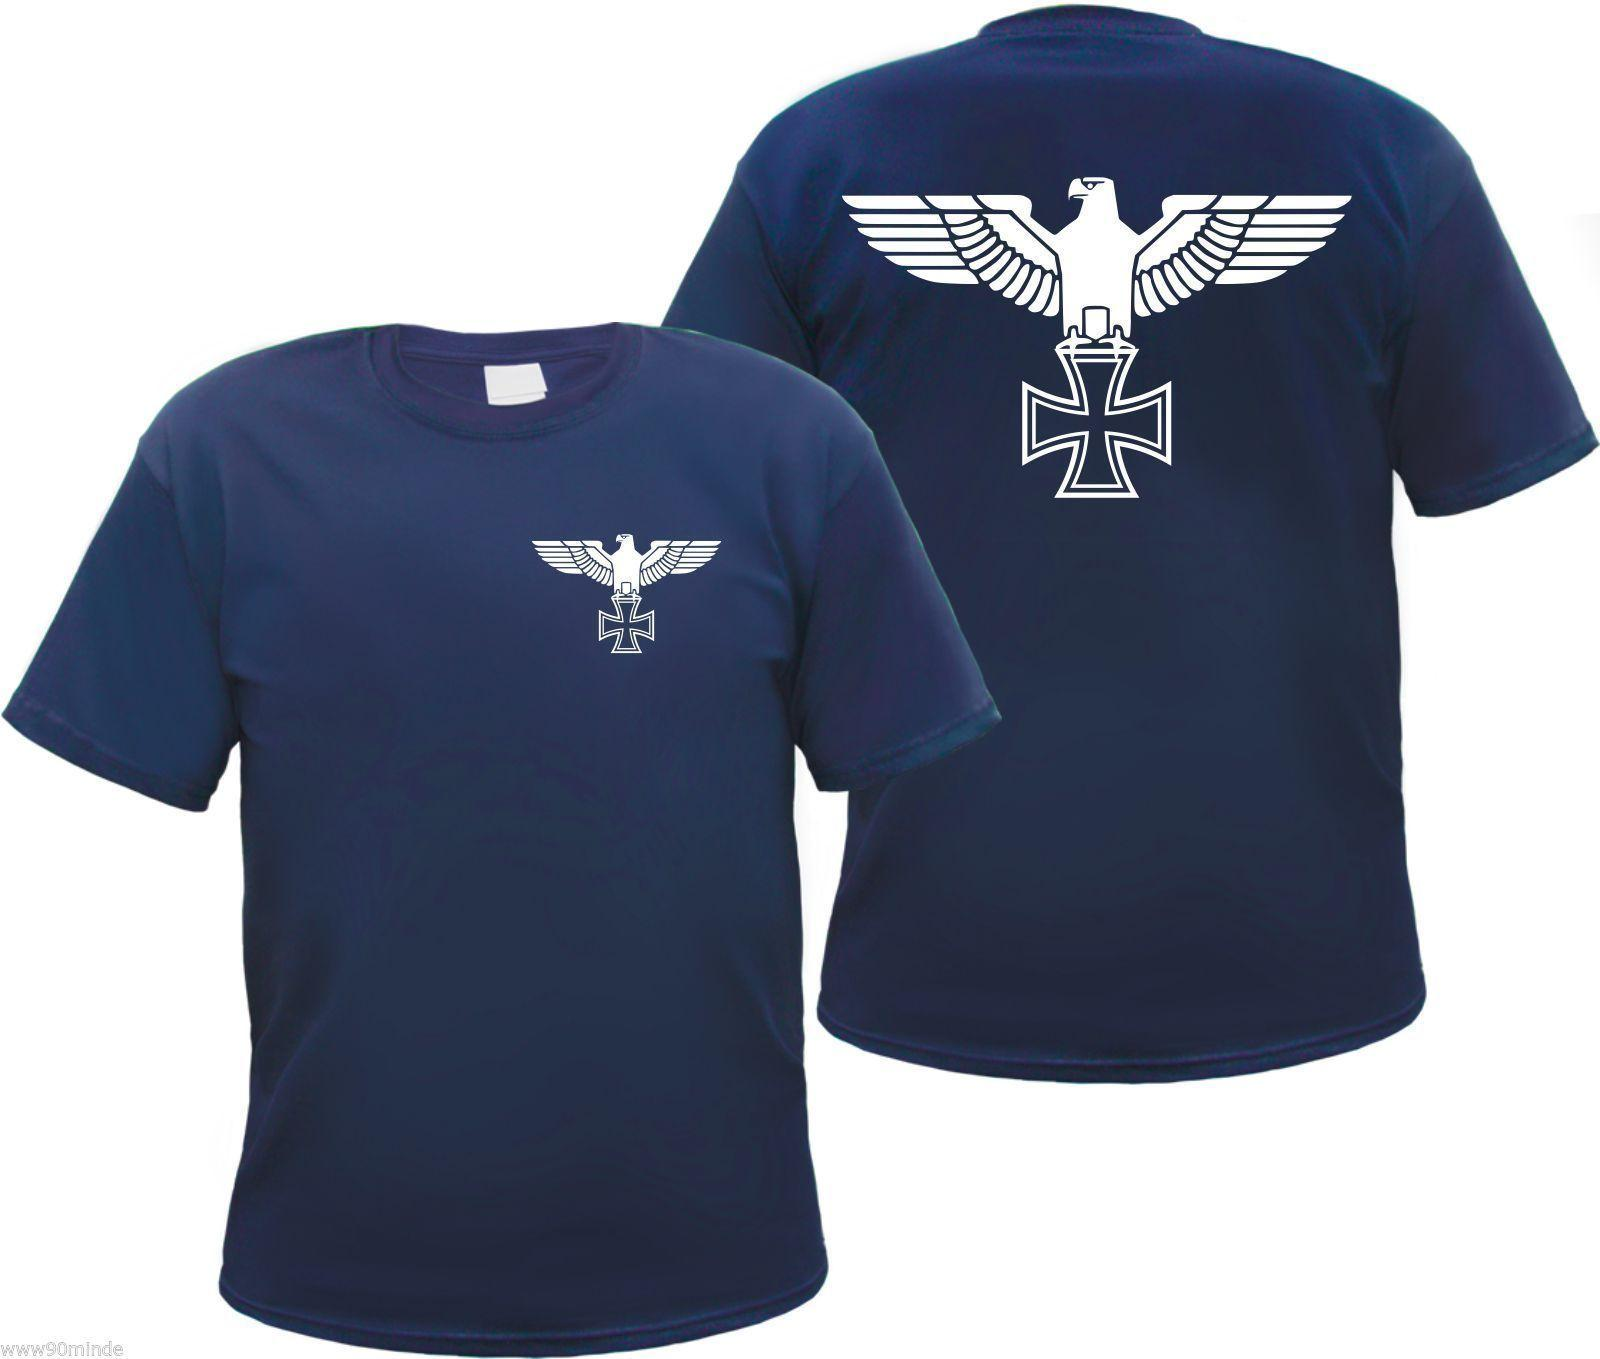 a3c02b457 Imperial Eagle Men's T Shirt Iron Cross Navy S To 3xl Front / Back Custom  Made Good Quality T Shirt Top Tee